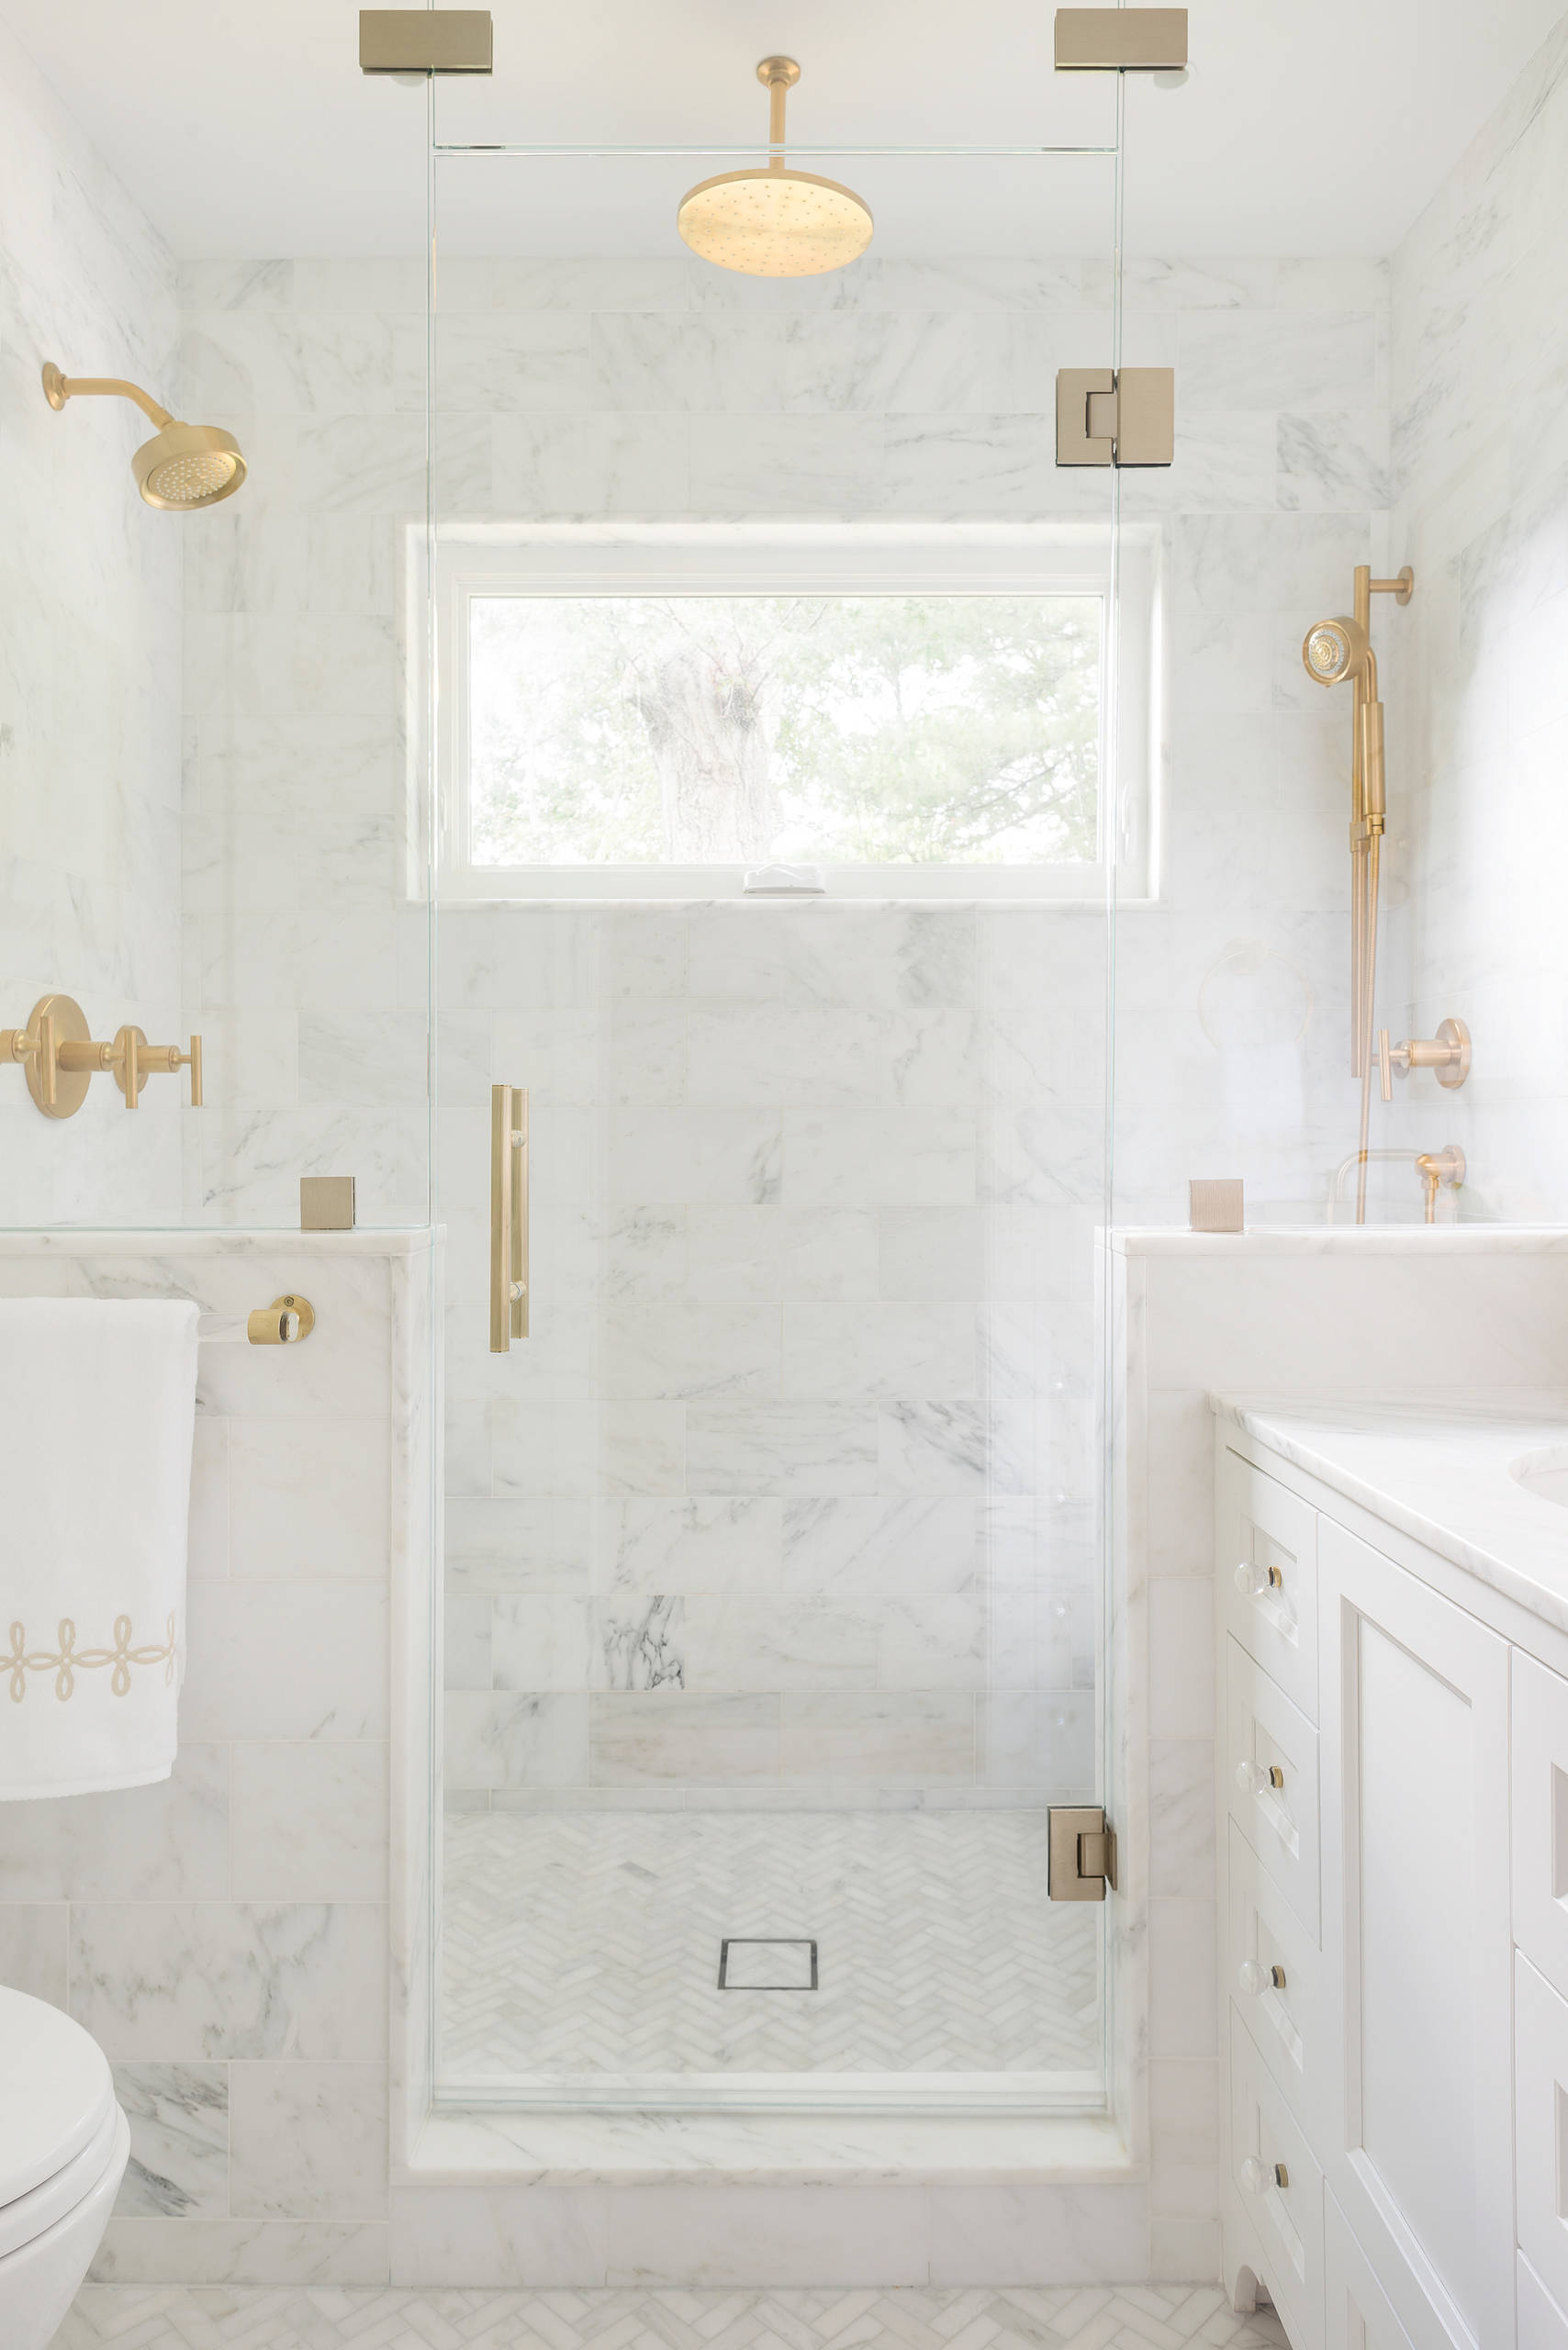 75 Beautiful Small Master Bathroom Pictures Ideas November 2020 Houzz